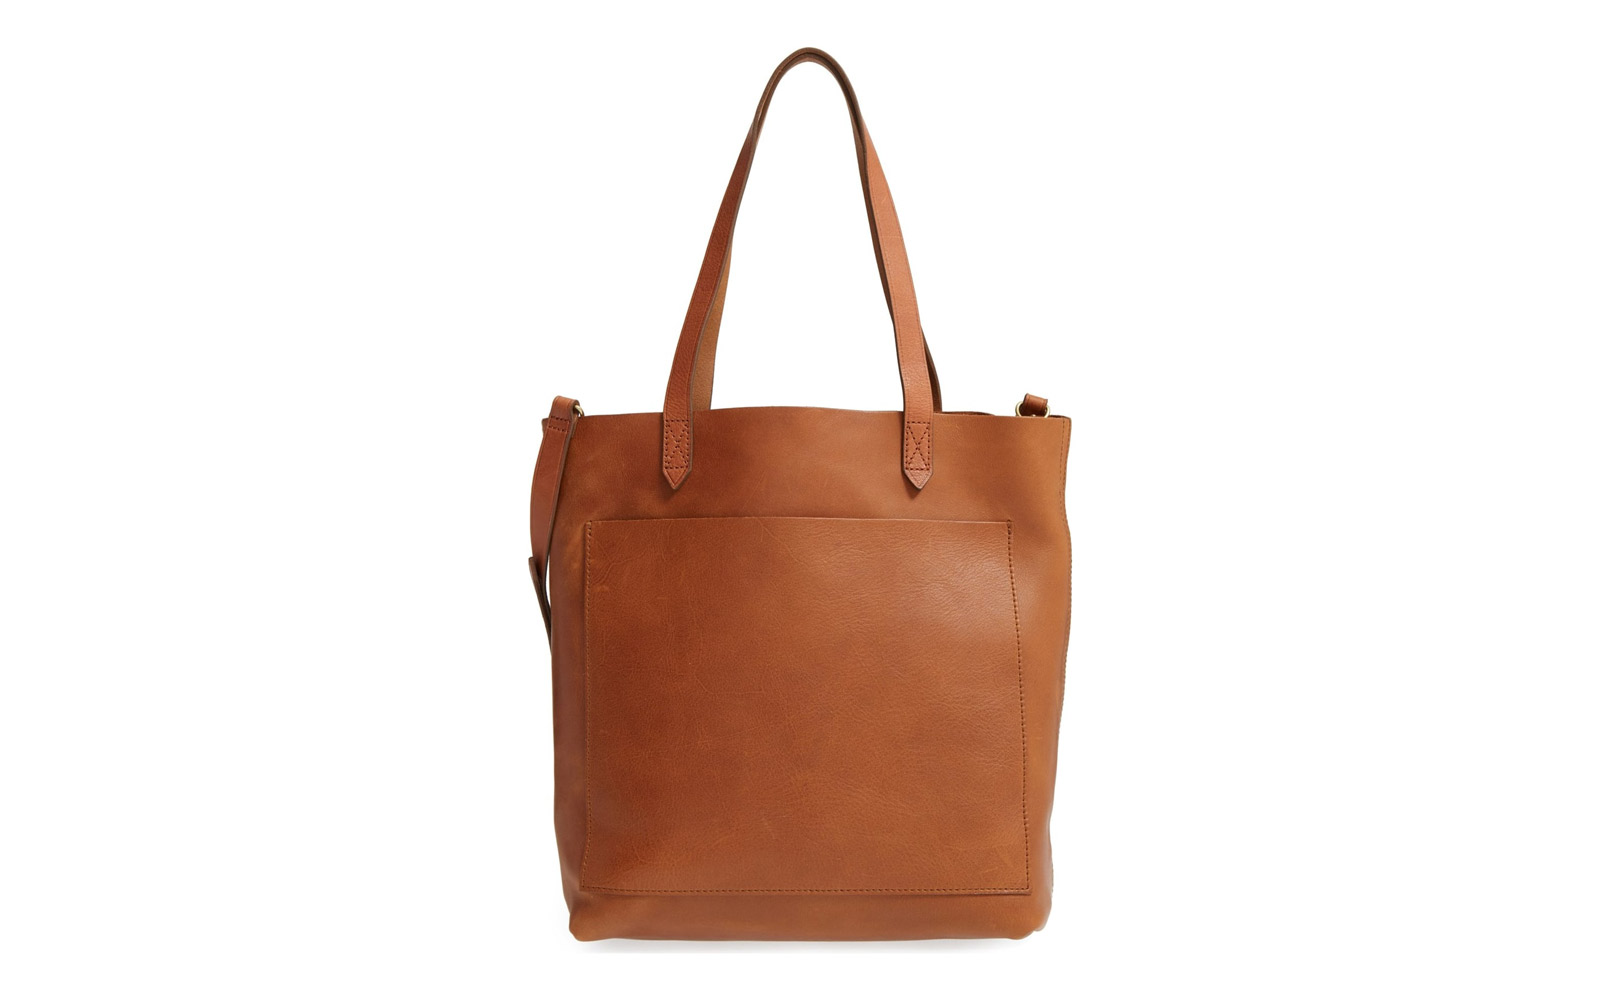 travel tote bag with zipper